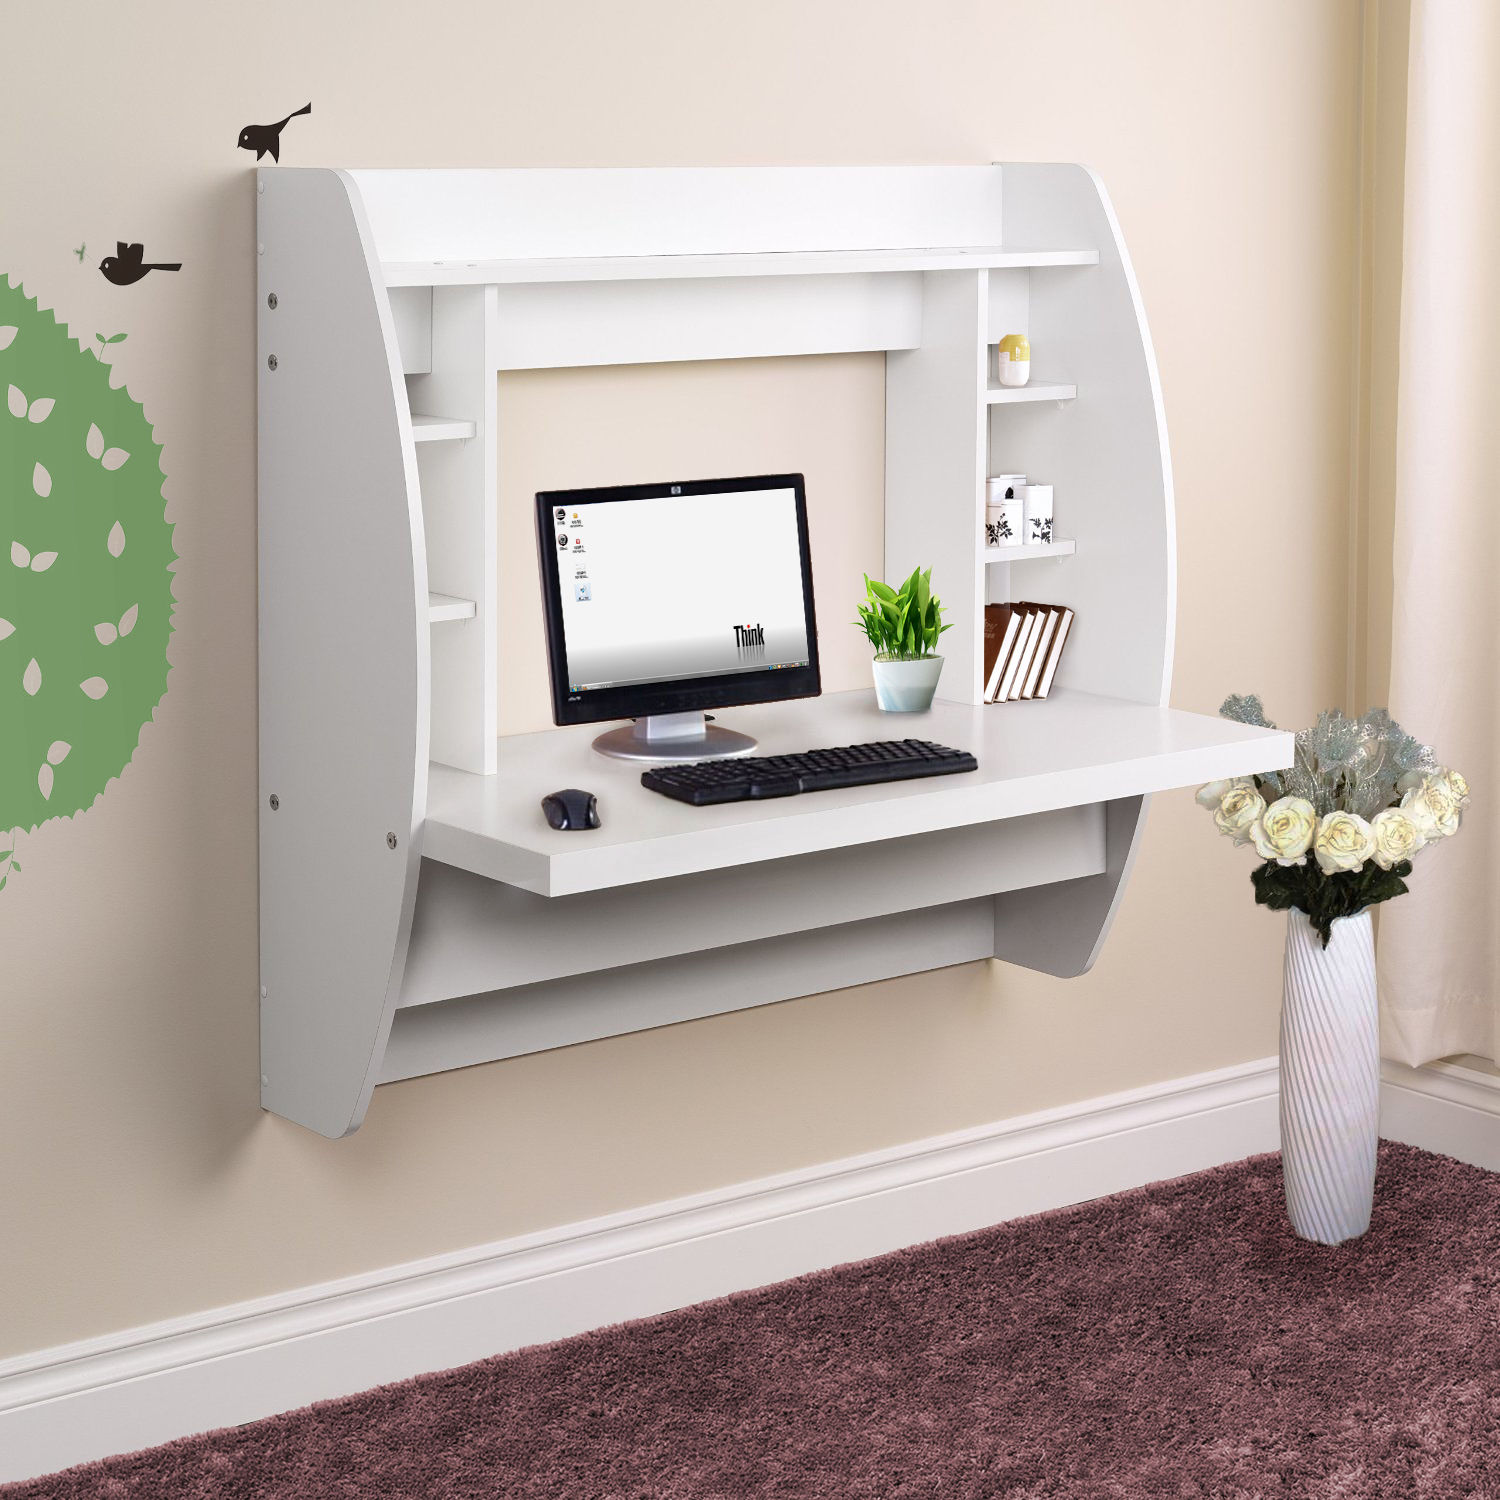 best website 32edb fb476 Details about White Wall Mount Floating Shelf Computer Desk for Home Office  PC Table Nice